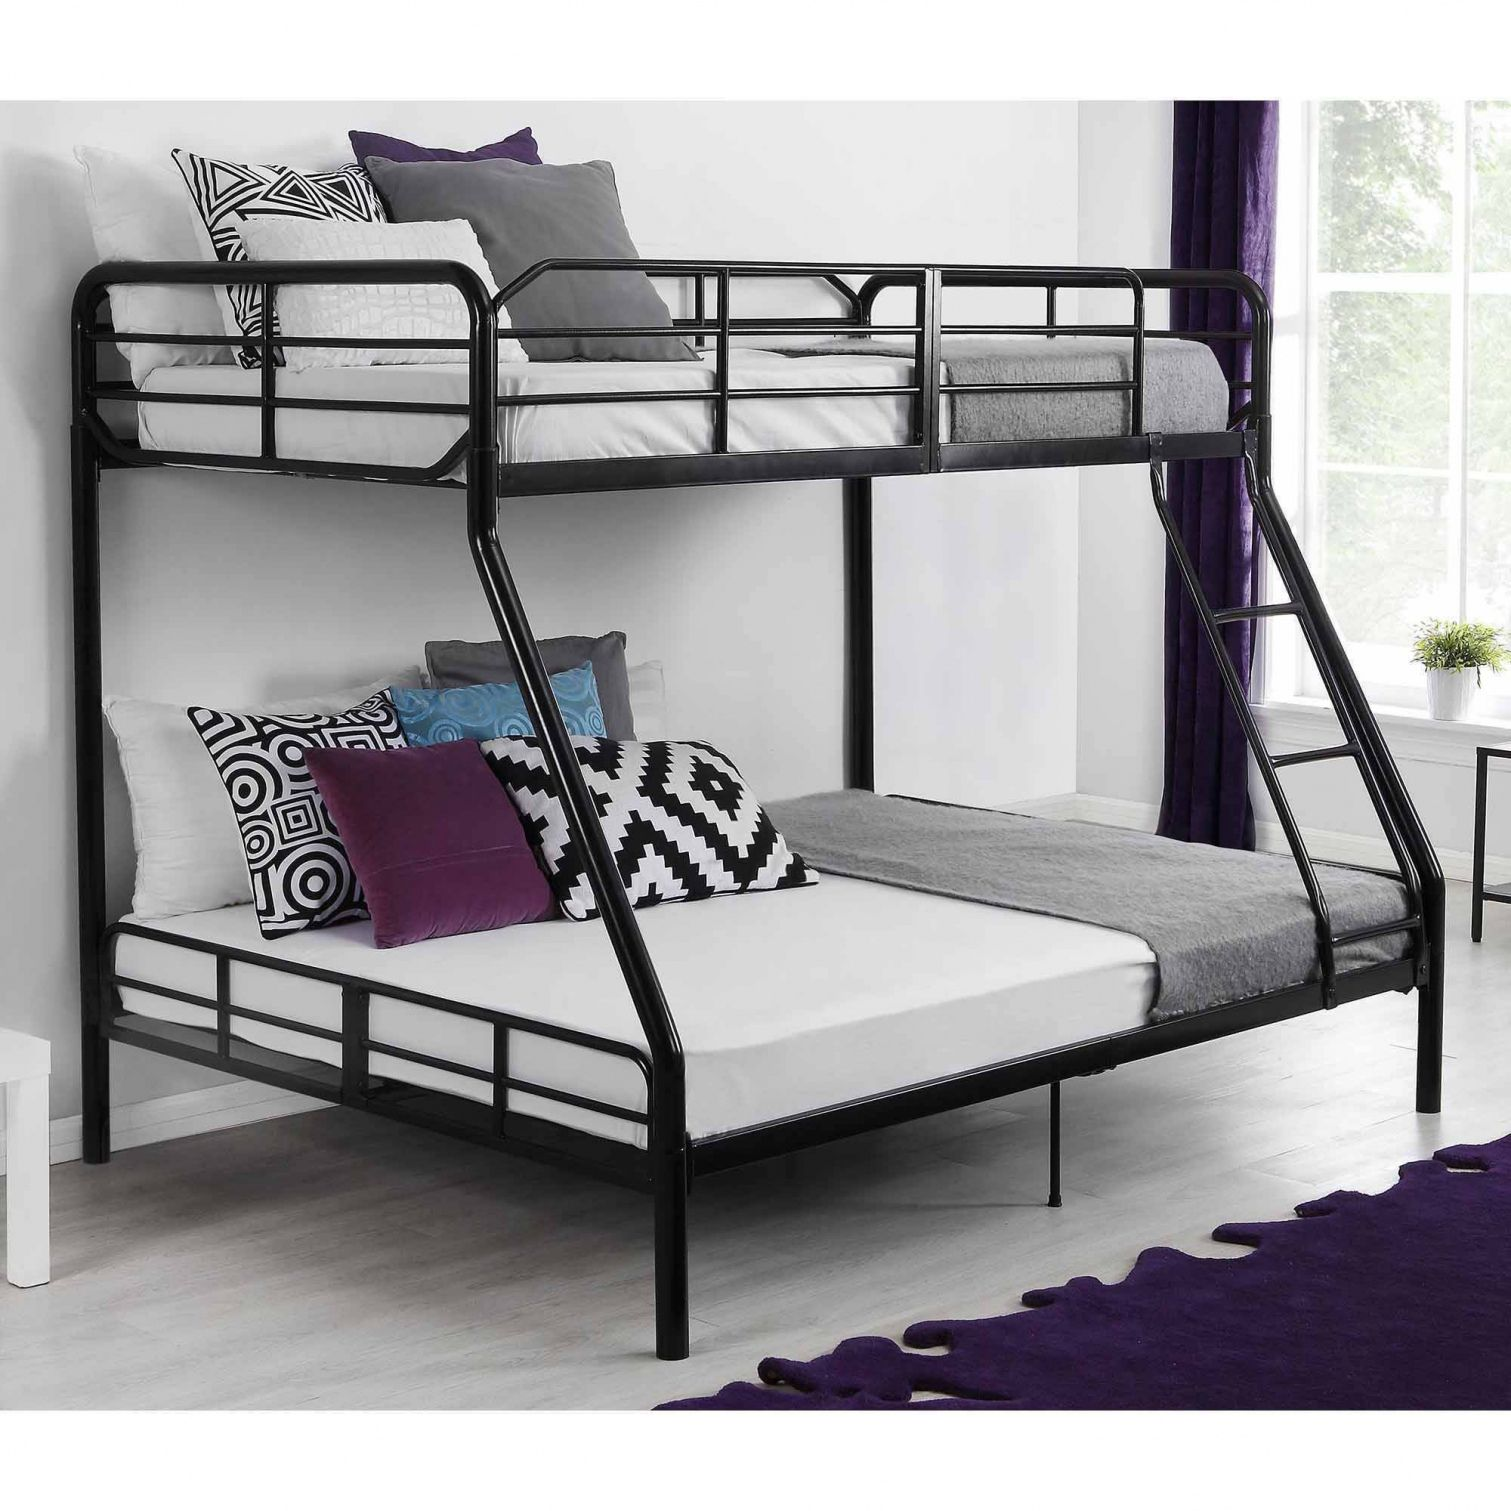 Queen loft bed with stairs  Cheap Full Bunk Beds  Best Interior Paint Brand Check more at